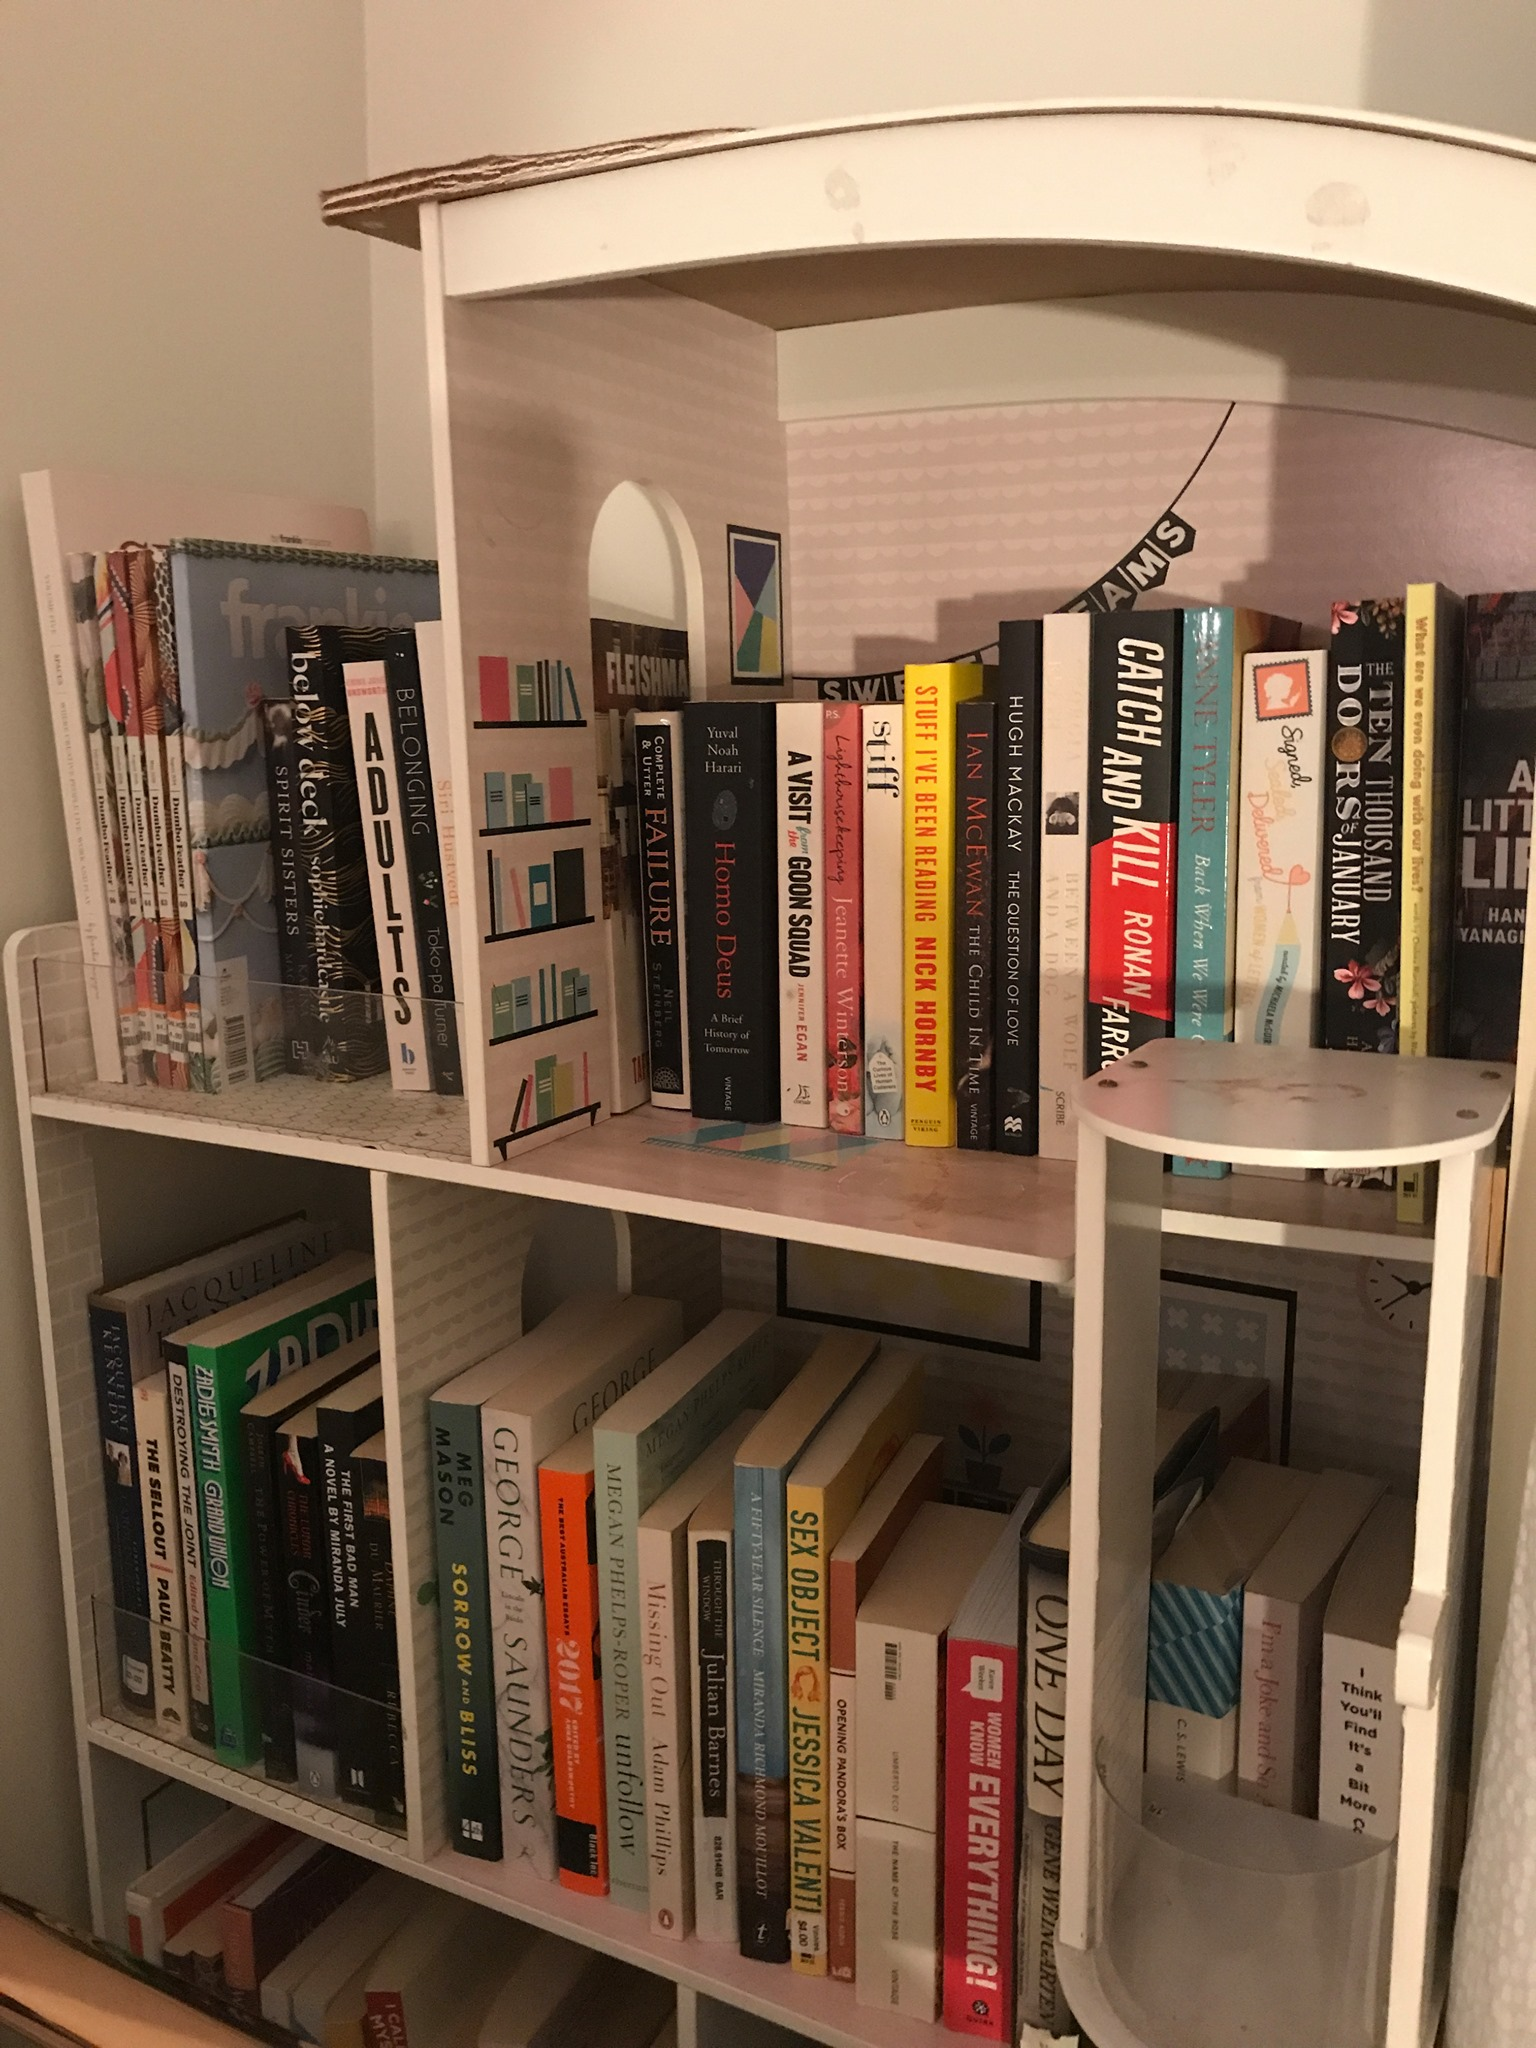 A dollhouse emptied of belongings and instead piled with books, like a bookshelf.